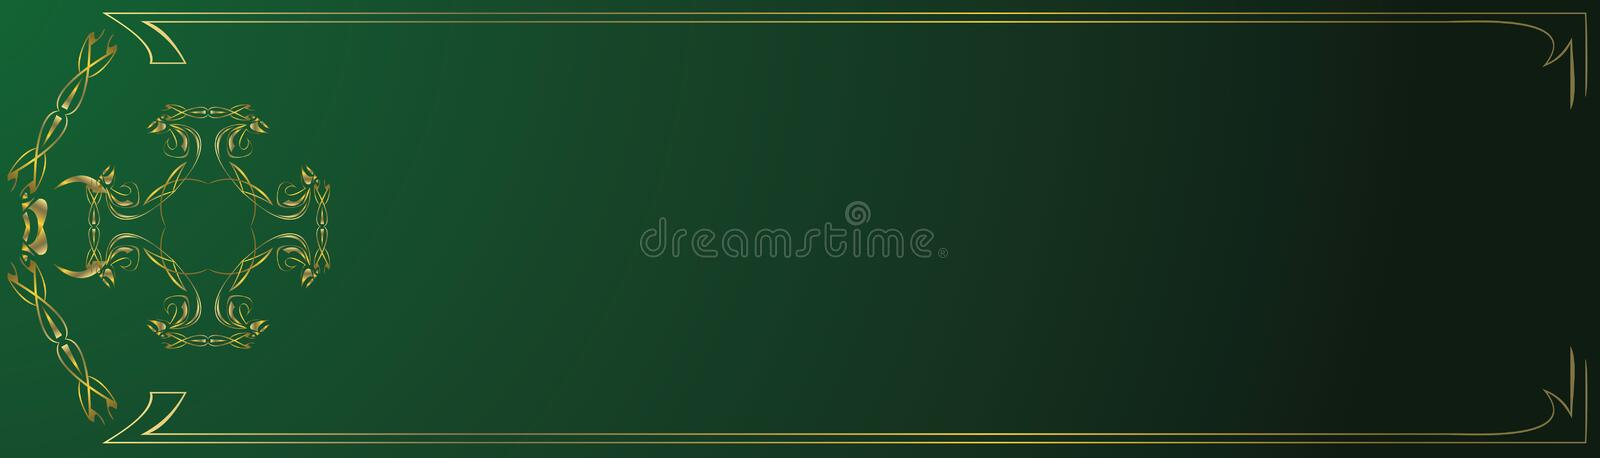 Abstract gold and green banner stock illustration